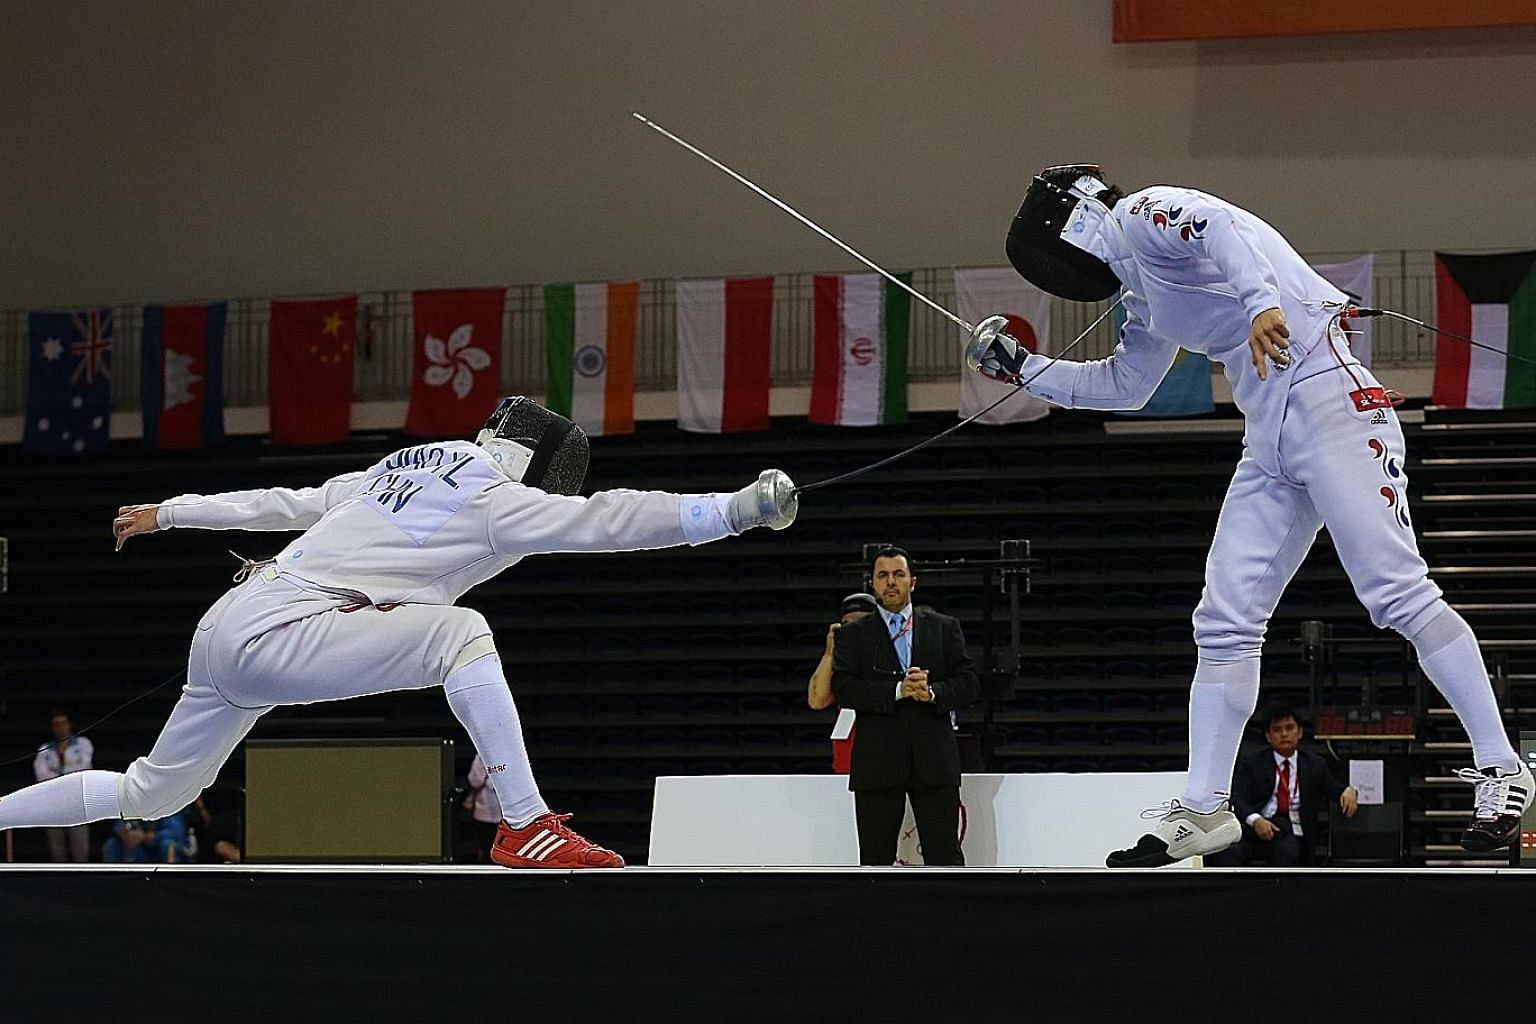 The unheralded world No. 107 from China, Jiao Yunlong, lunging to score a point in his razor-thin 11-10 win over the highest-ranked fencer in the epee discipline, world No. 6 Park Kyoung Doo from South Korea.